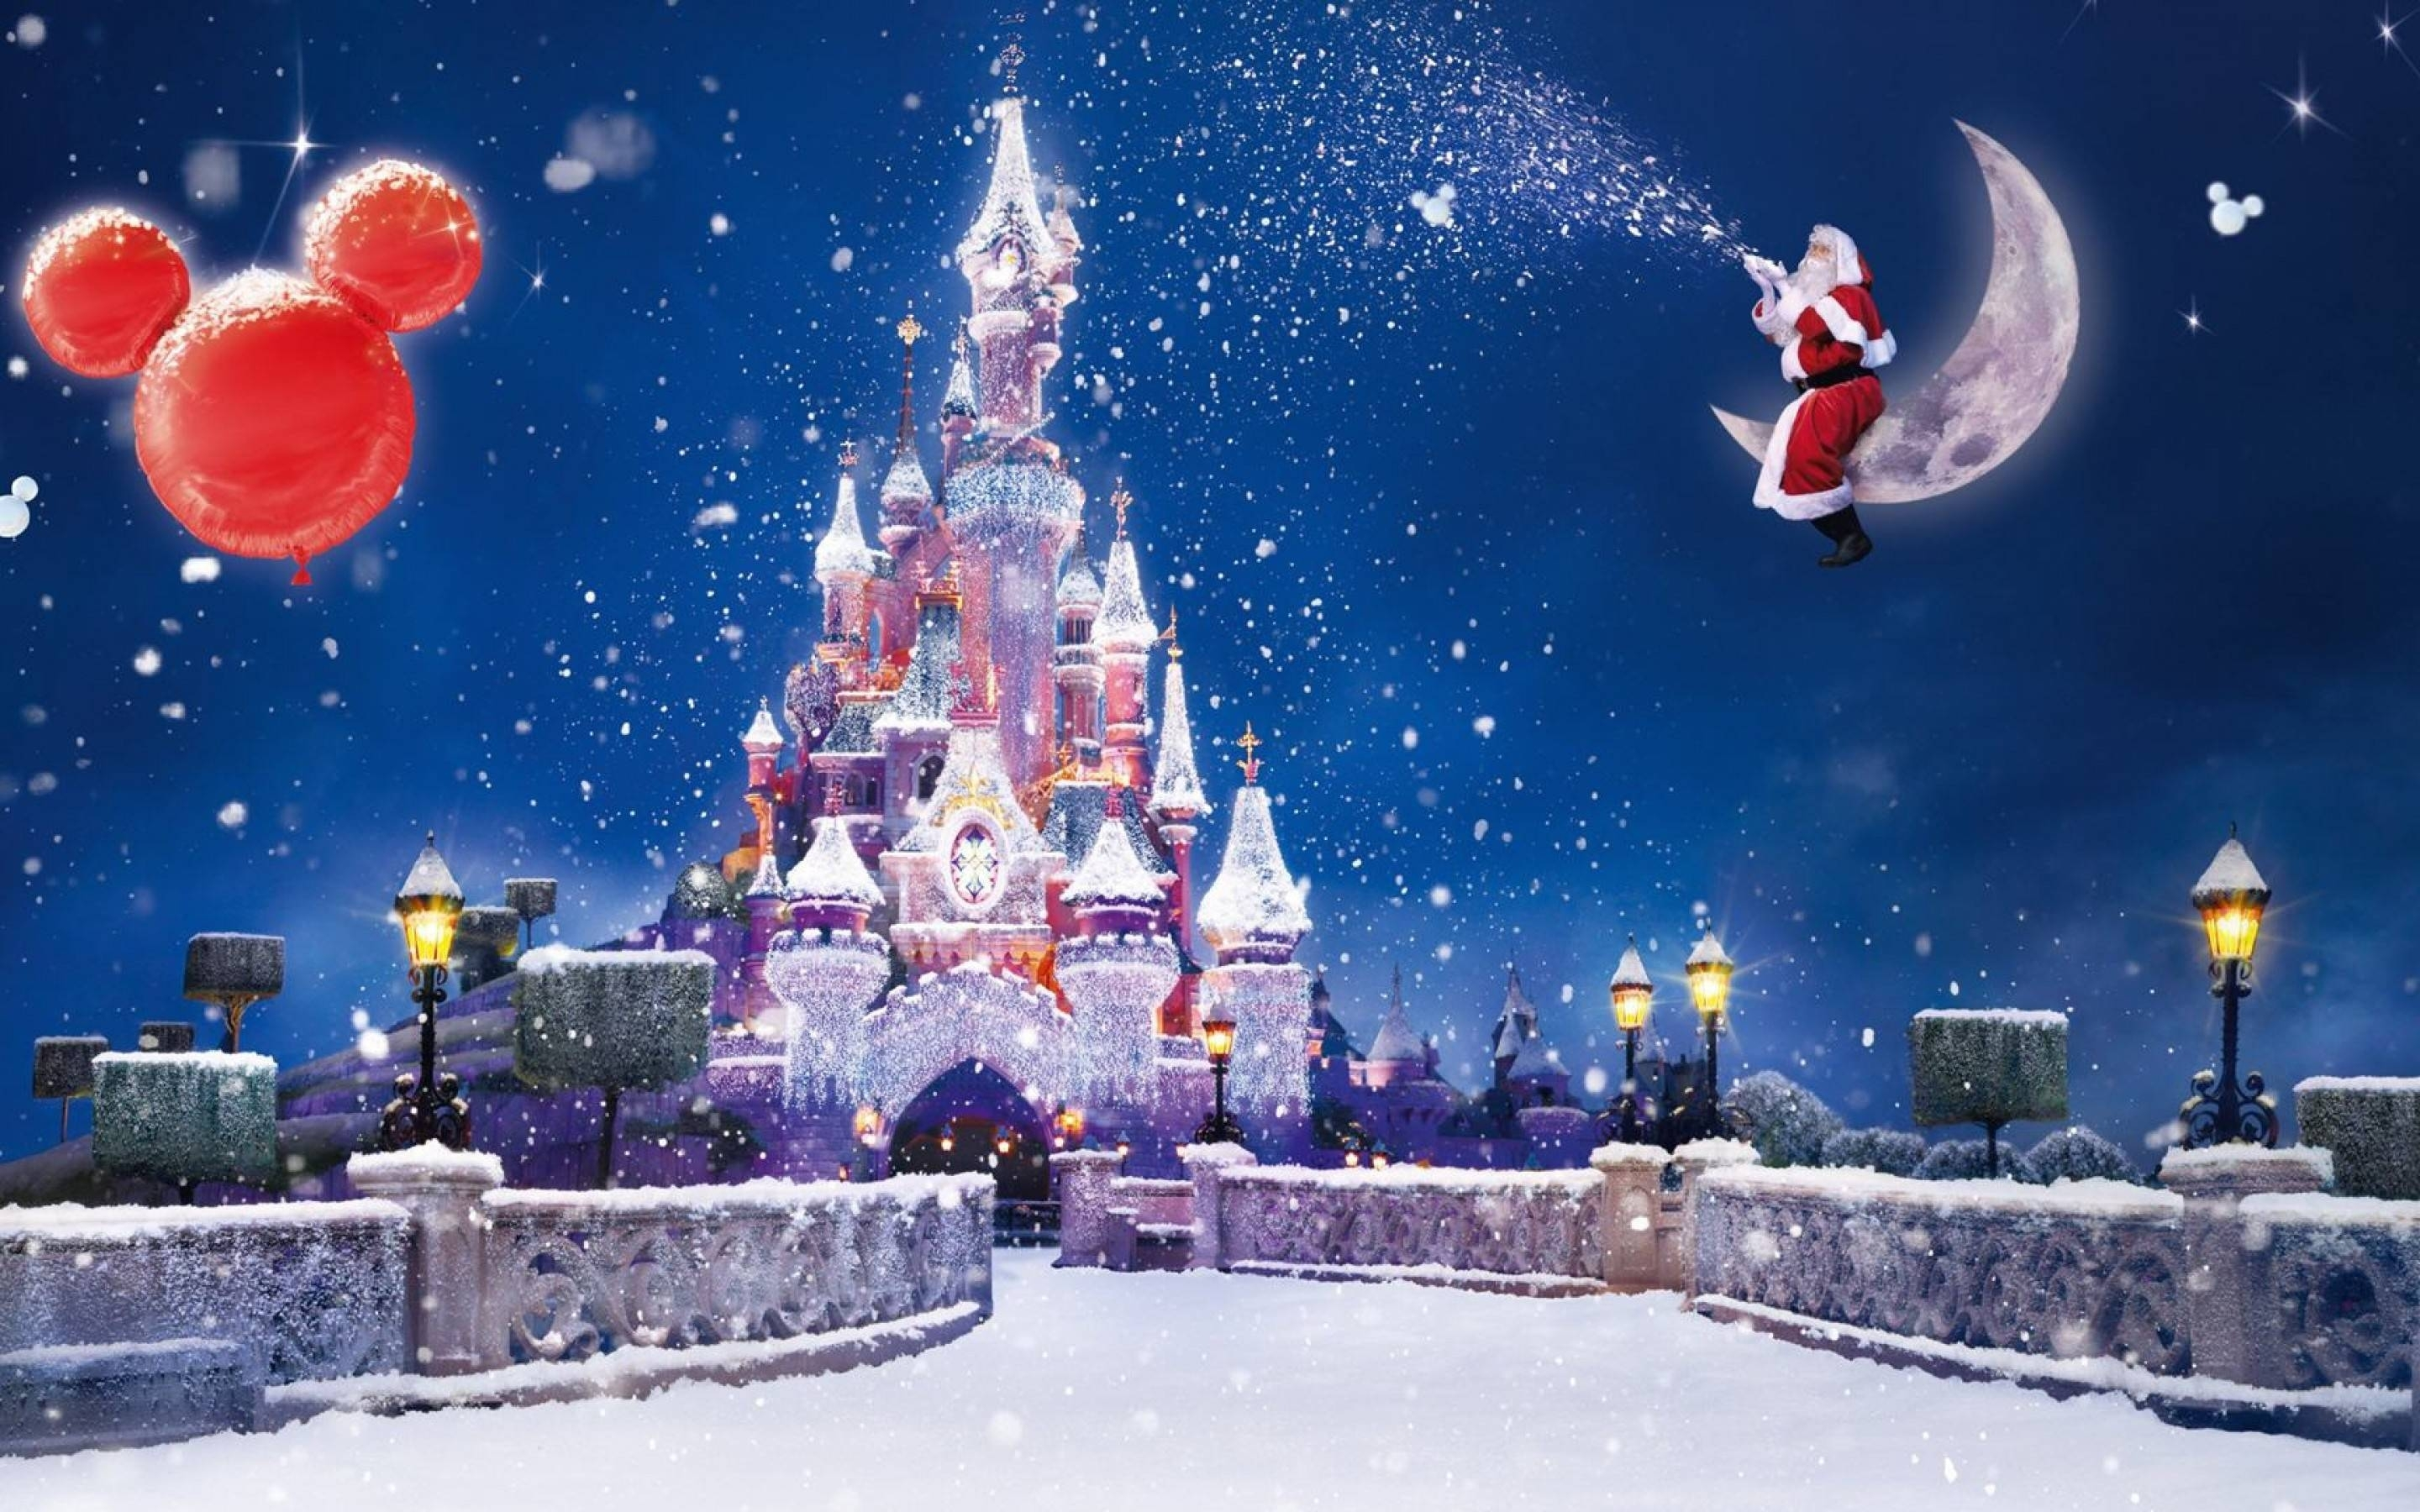 disney christmas backgrounds - wallpaper cave